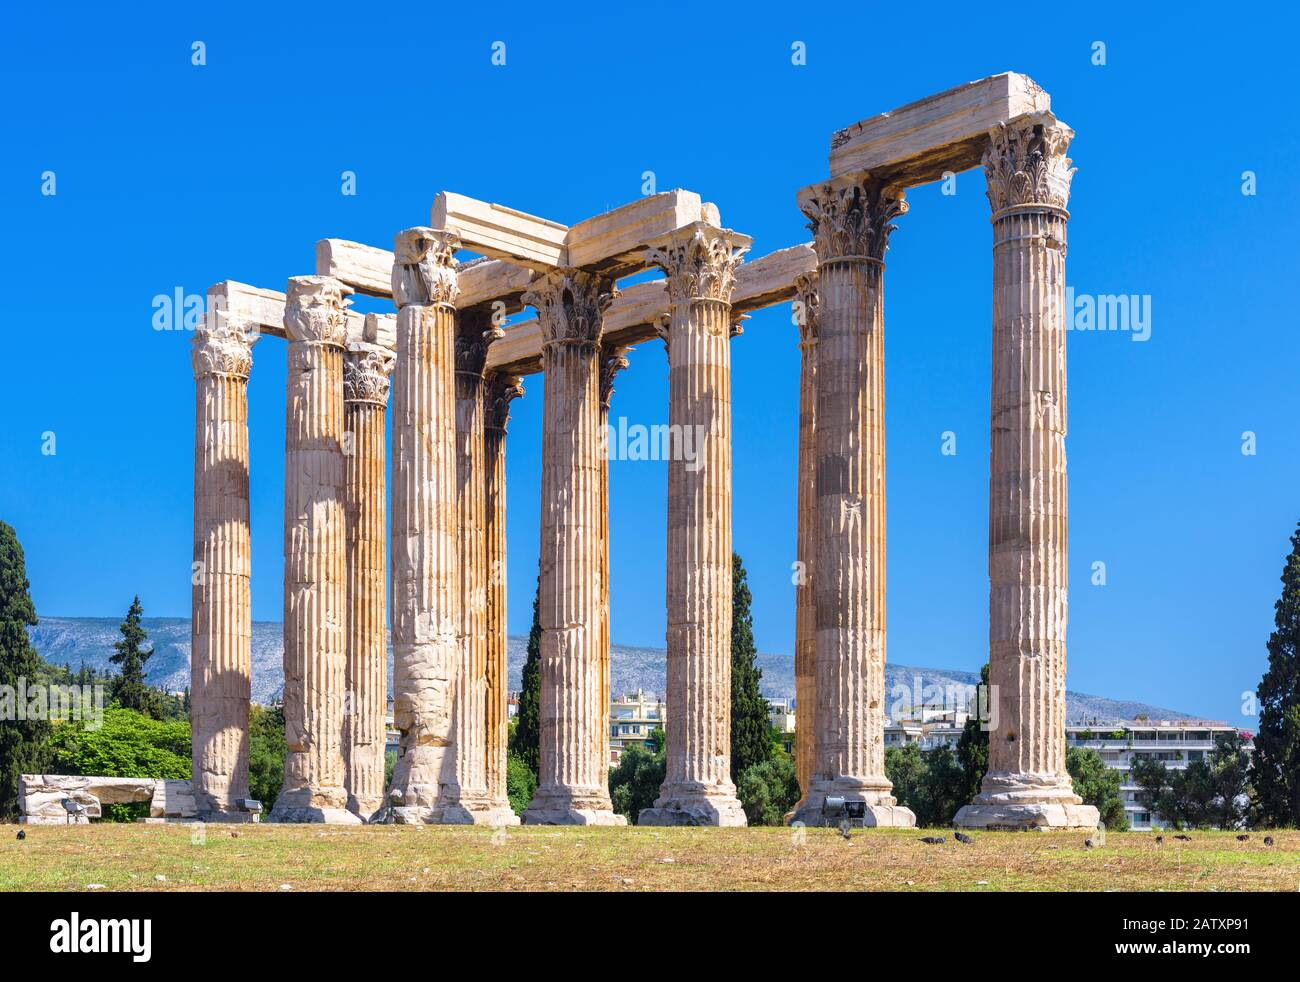 Popular Tourist Attractions In Greece